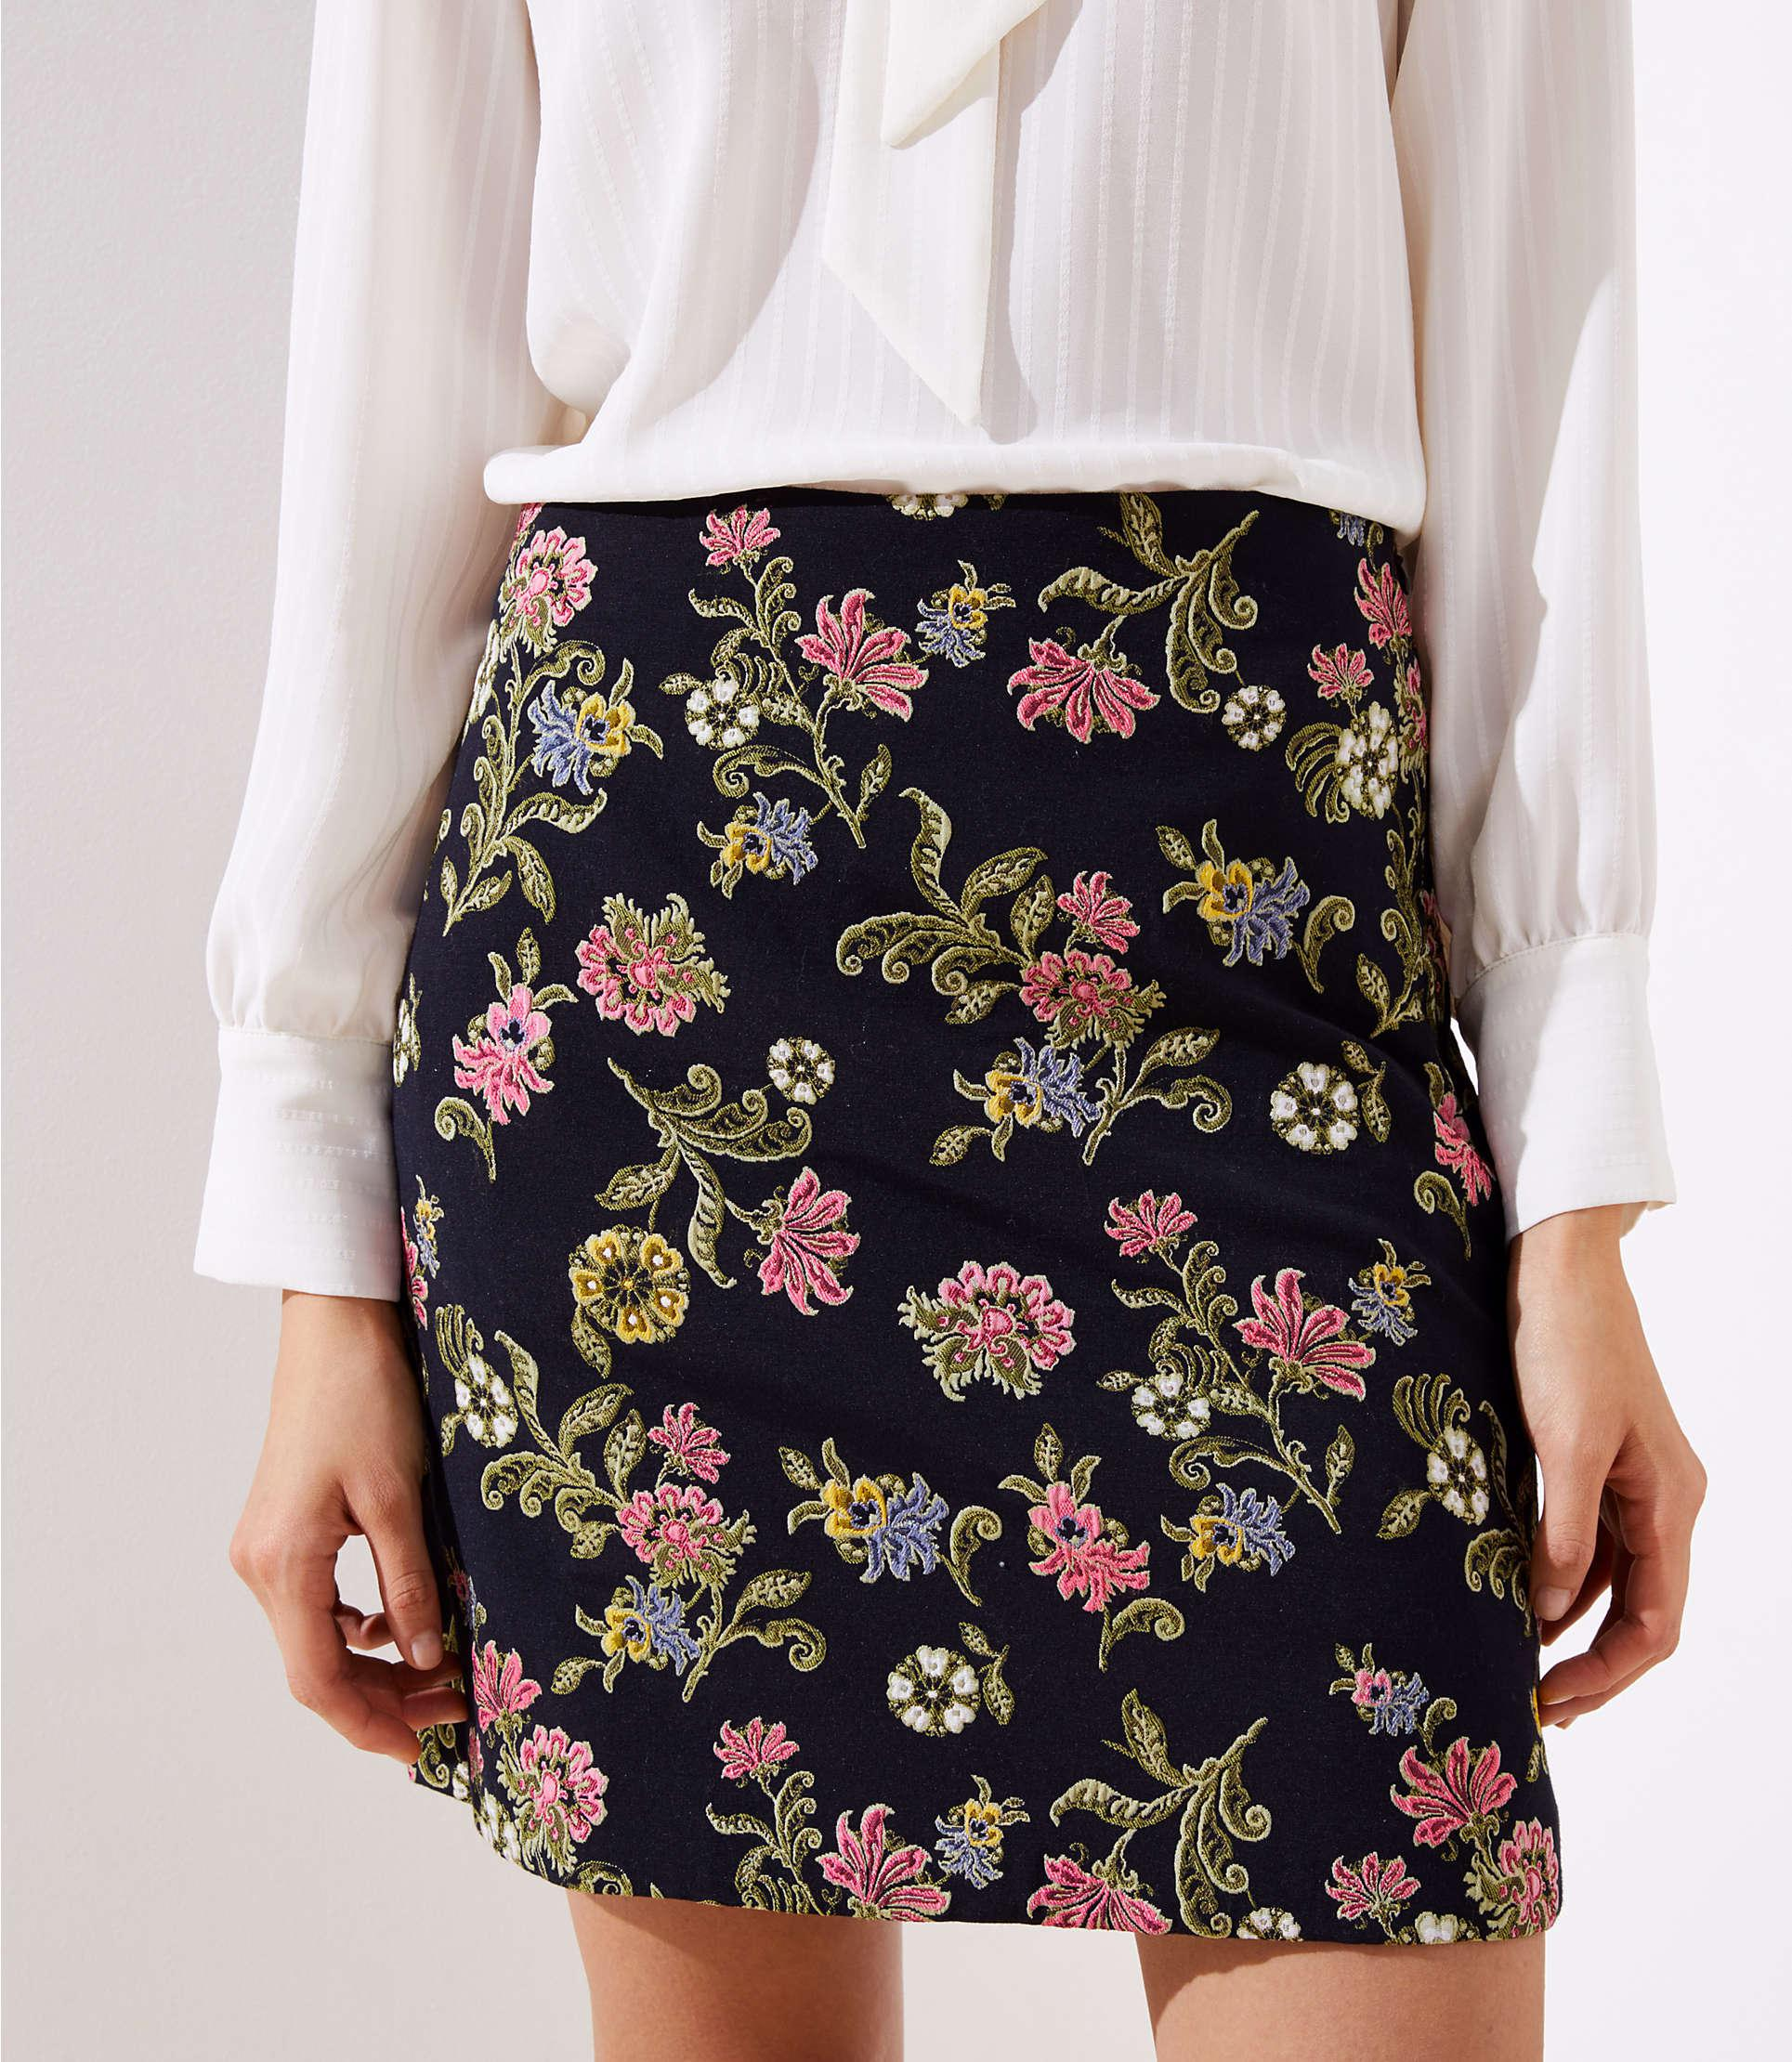 44bbf223f93 LOFT - Black Floral Vine Jacquard Shift Skirt - Lyst. View fullscreen